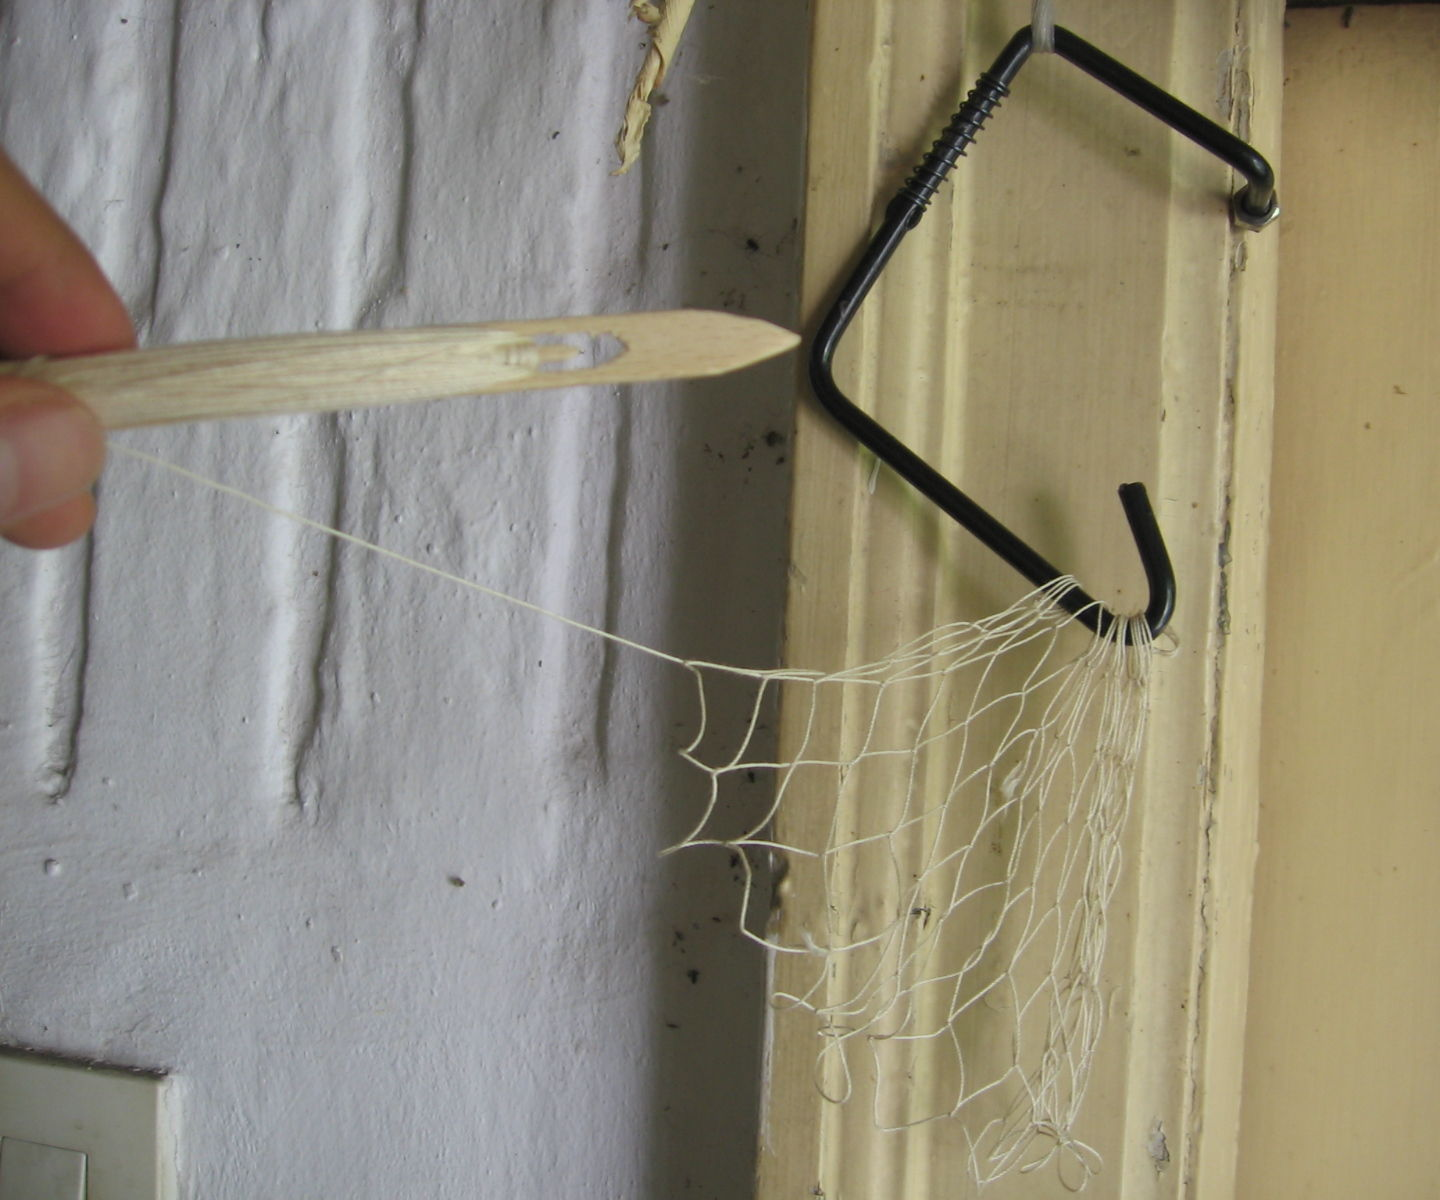 Make a net with the handmade tool